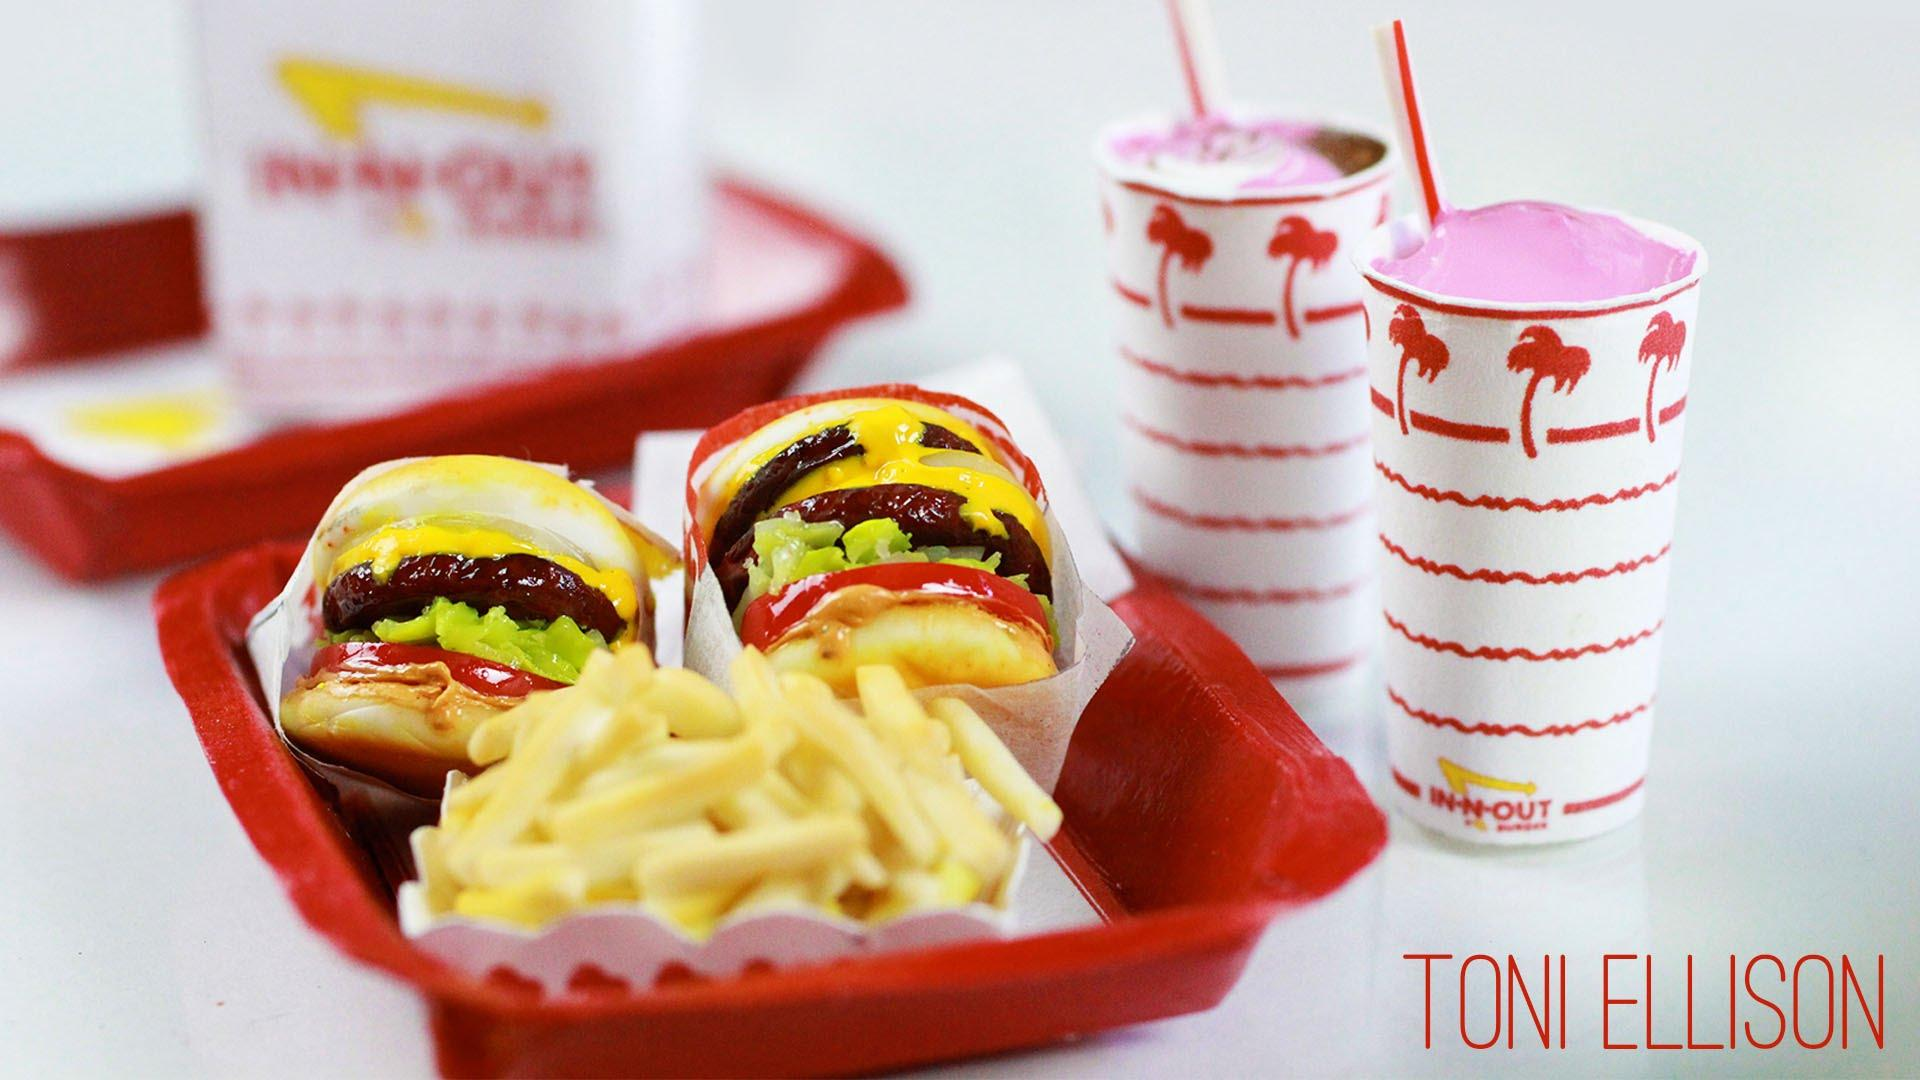 In-N-Out Burger Wallpapers and Background Images - stmed.net